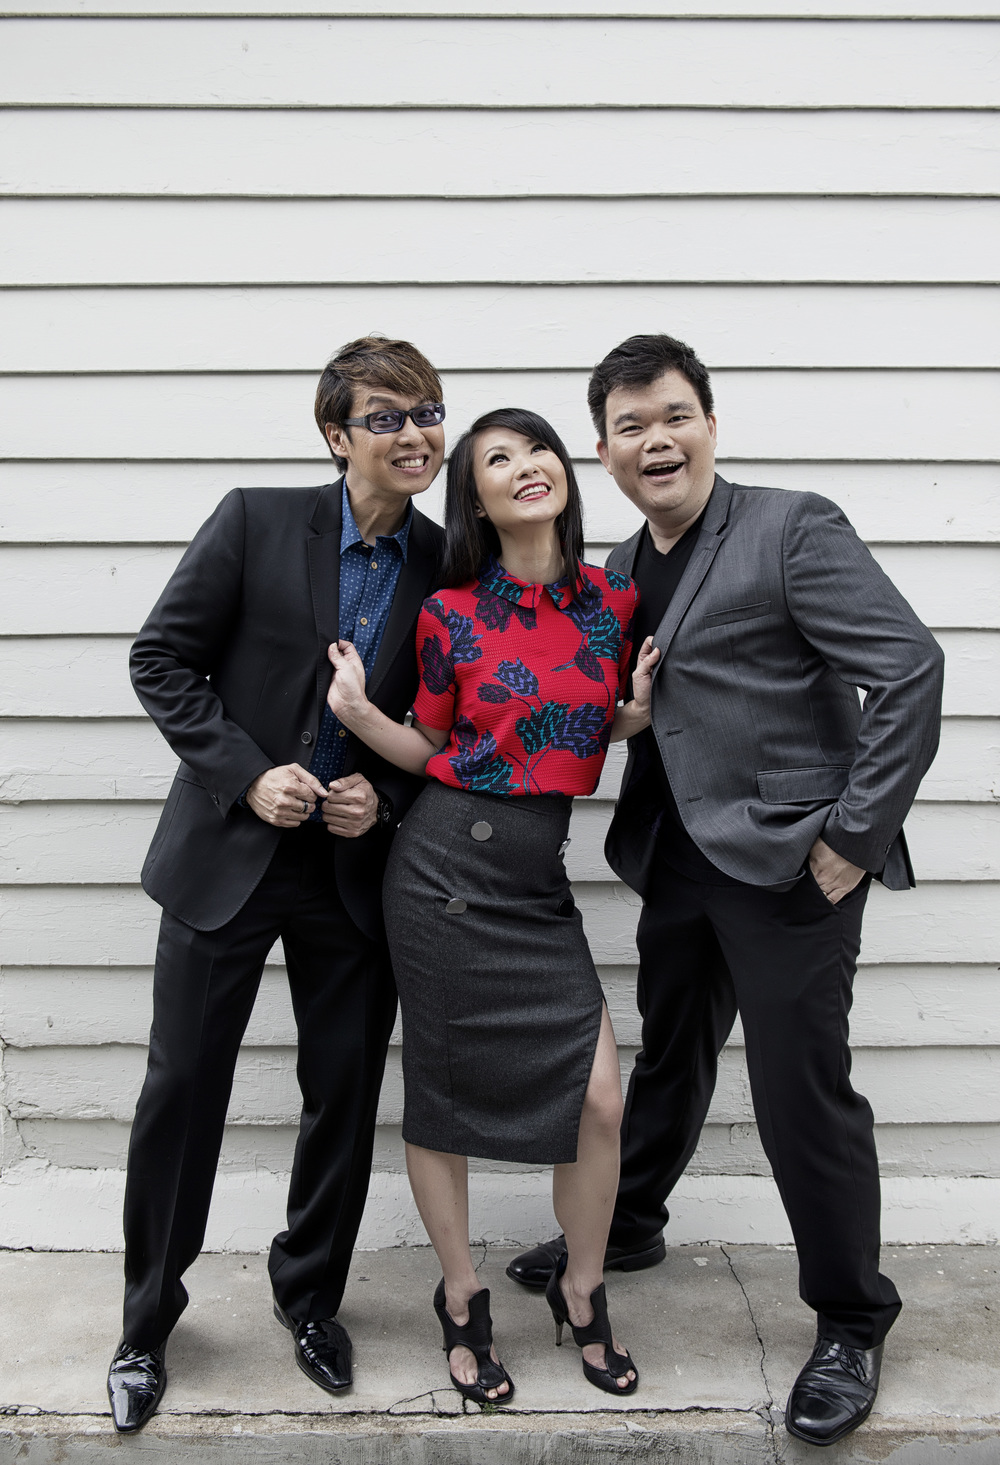 Glenn Ong, Marilyn Lee & Joe Augustine: DJs, Class 95FM